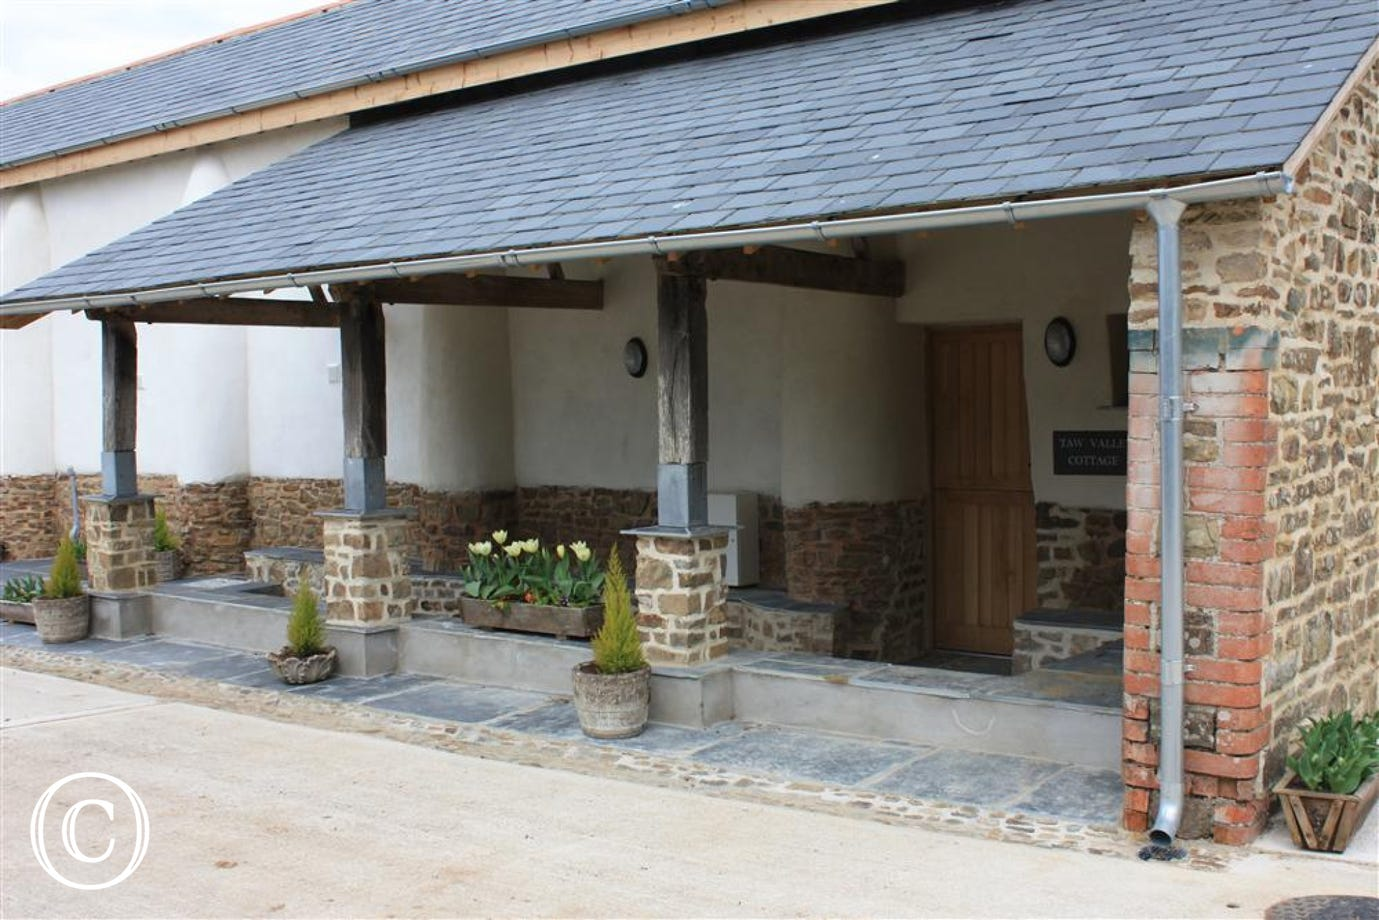 Parking and entrance to Taw Valley Cottage